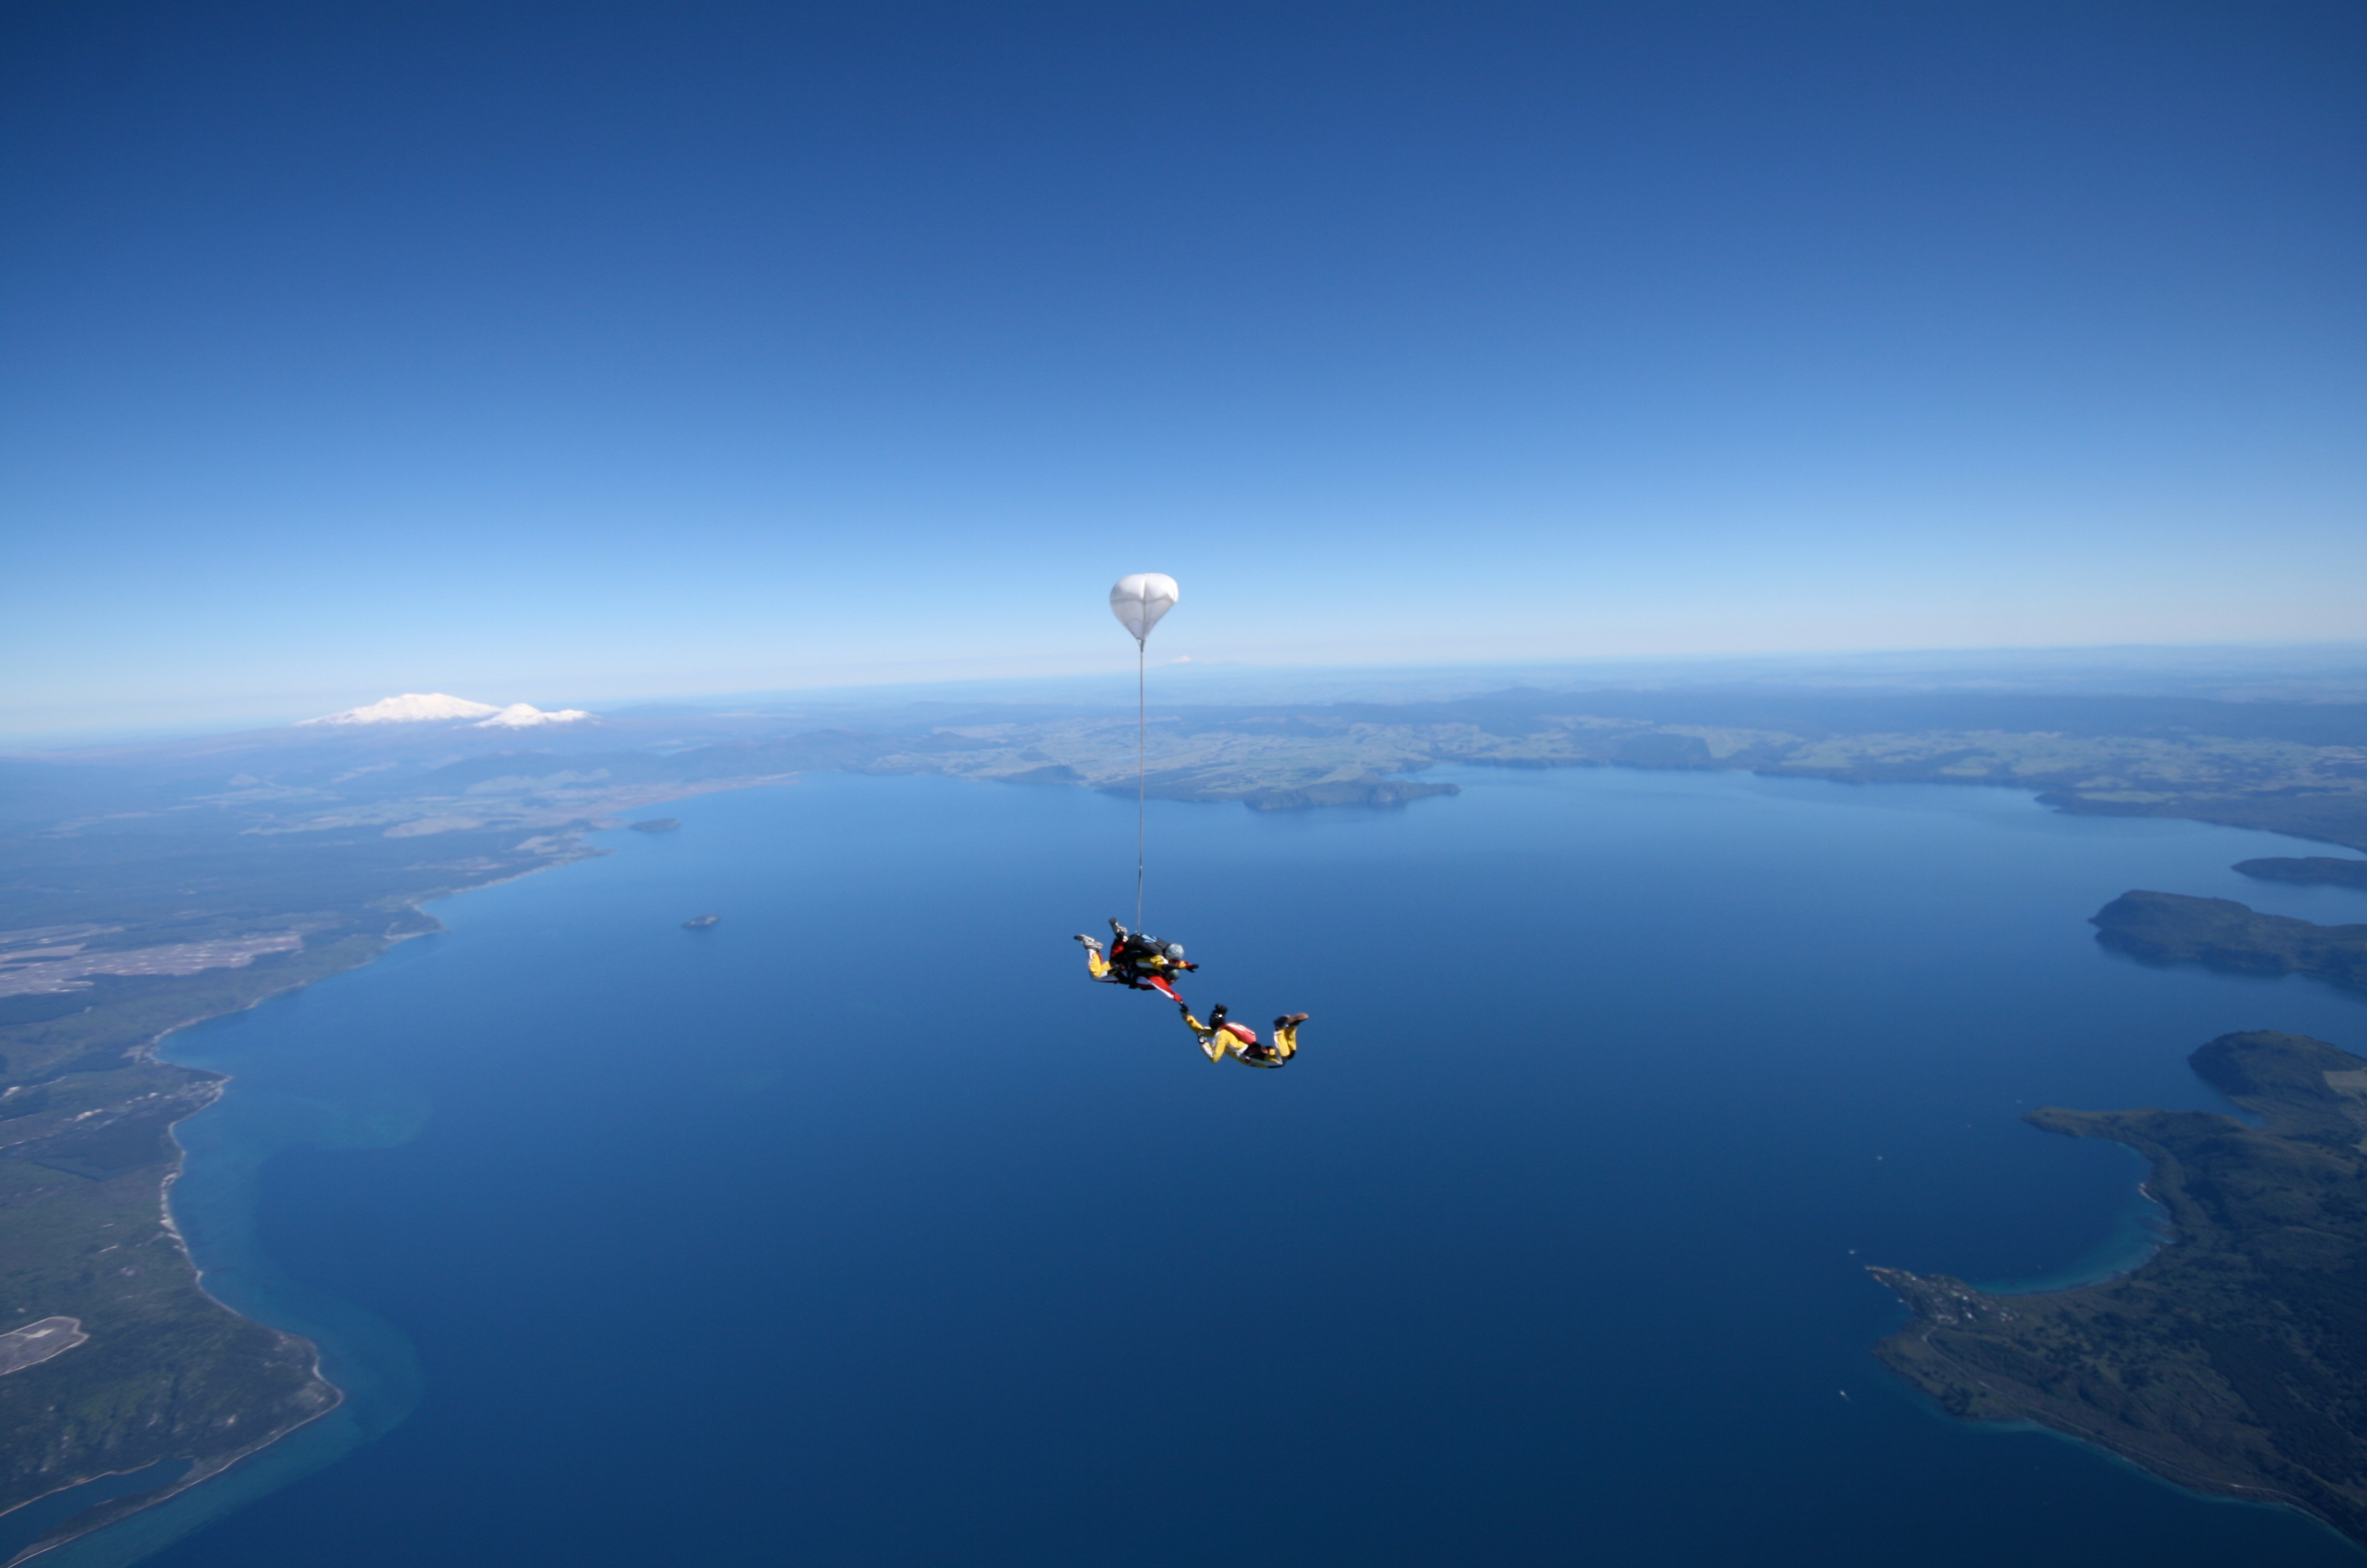 Taupo Tandem Skydiving over Lake Taupo